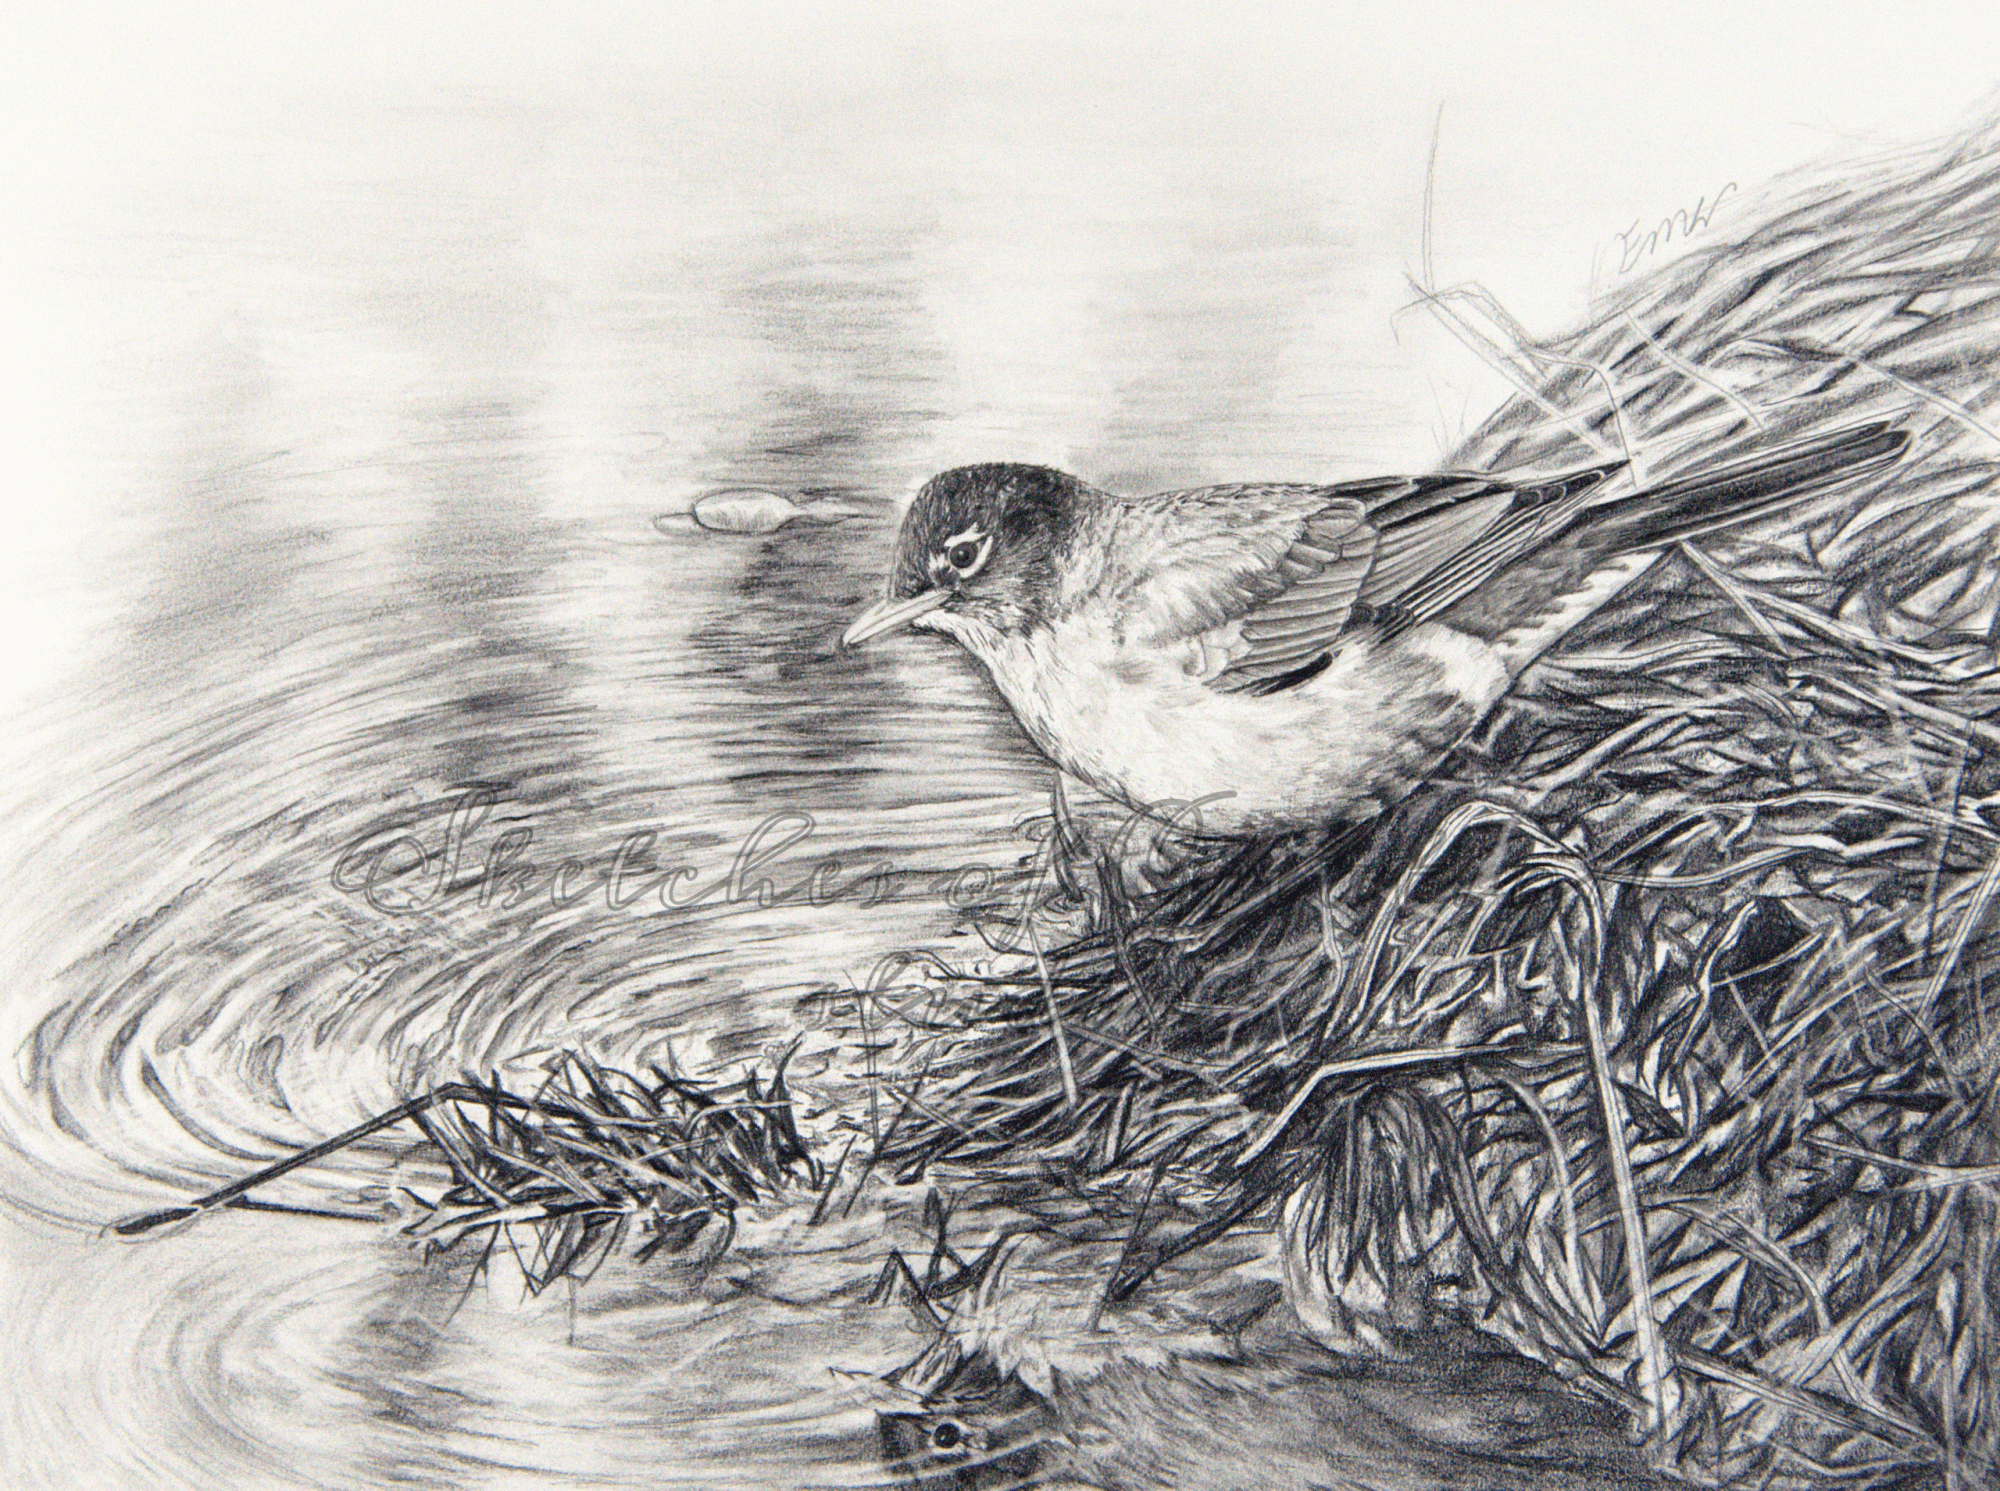 'Catches the Worm' a drawing of a robin near reflective, rippled water. 9x12 inches. Completed December 2019